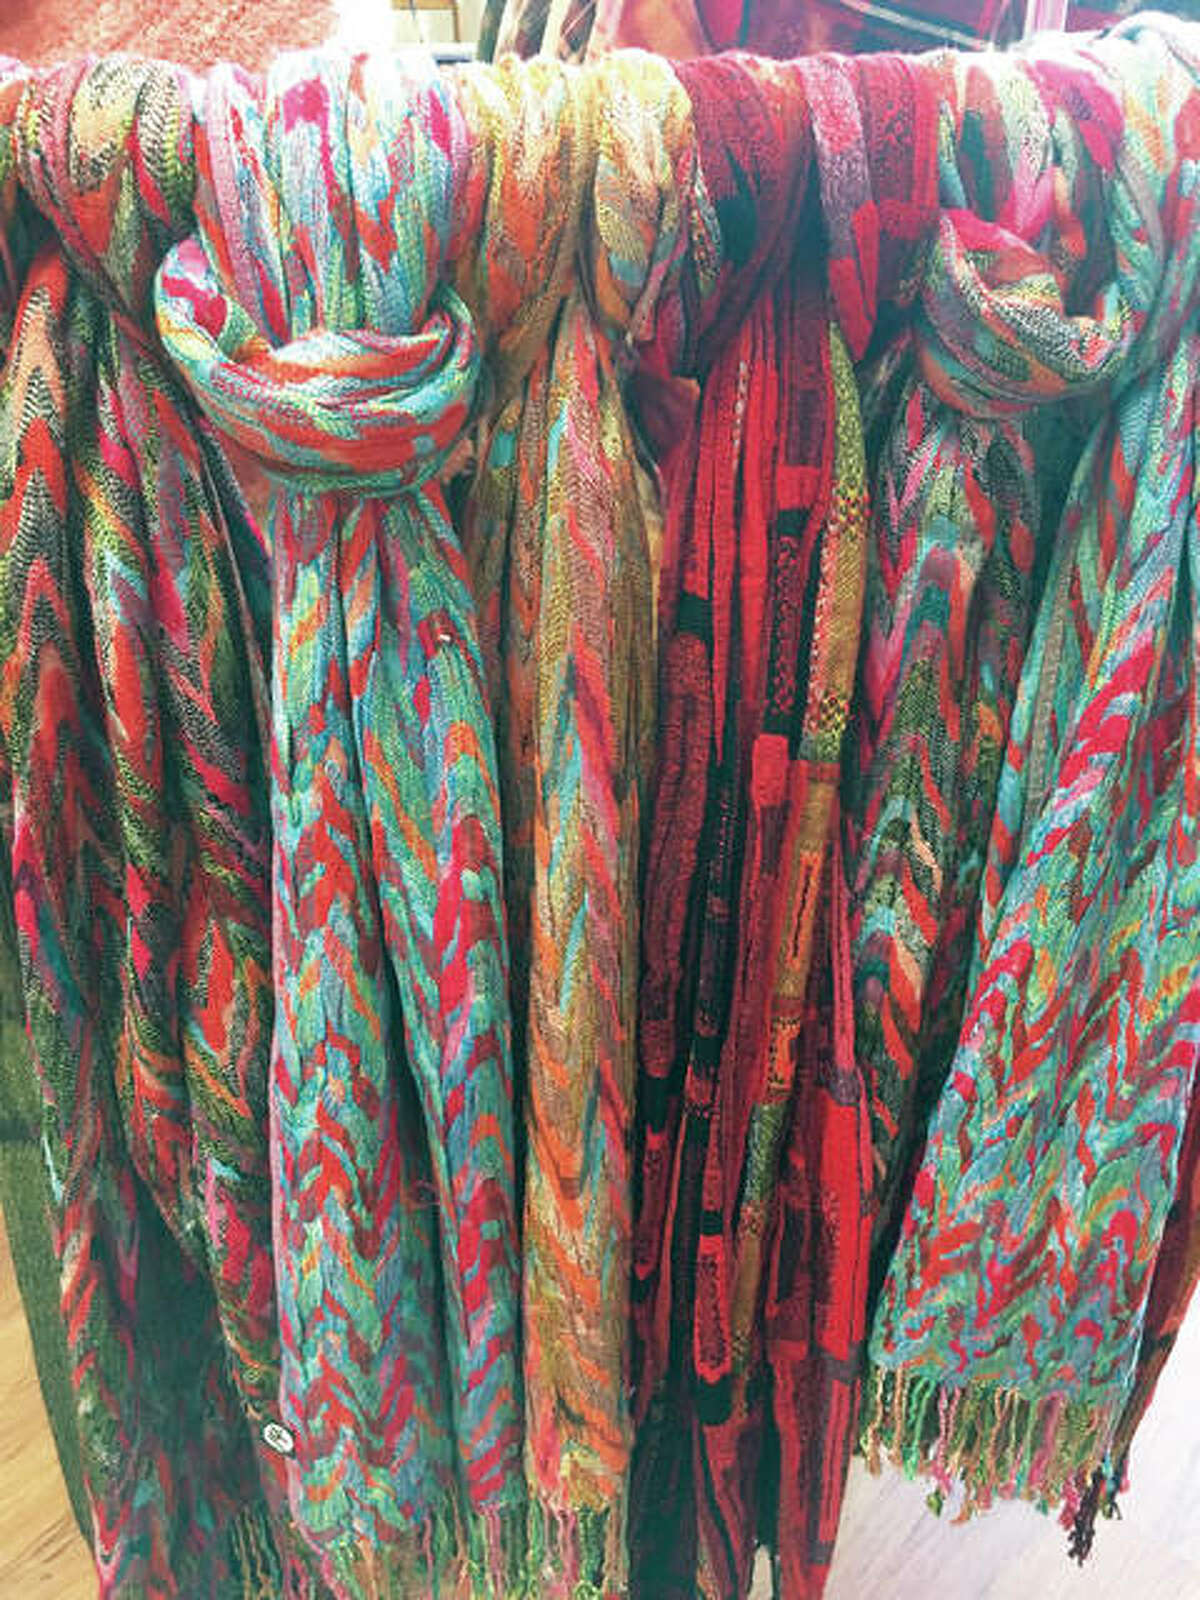 Wood River's Country Meadows carries stylish woven scarves, faux fur ponchos and much more.